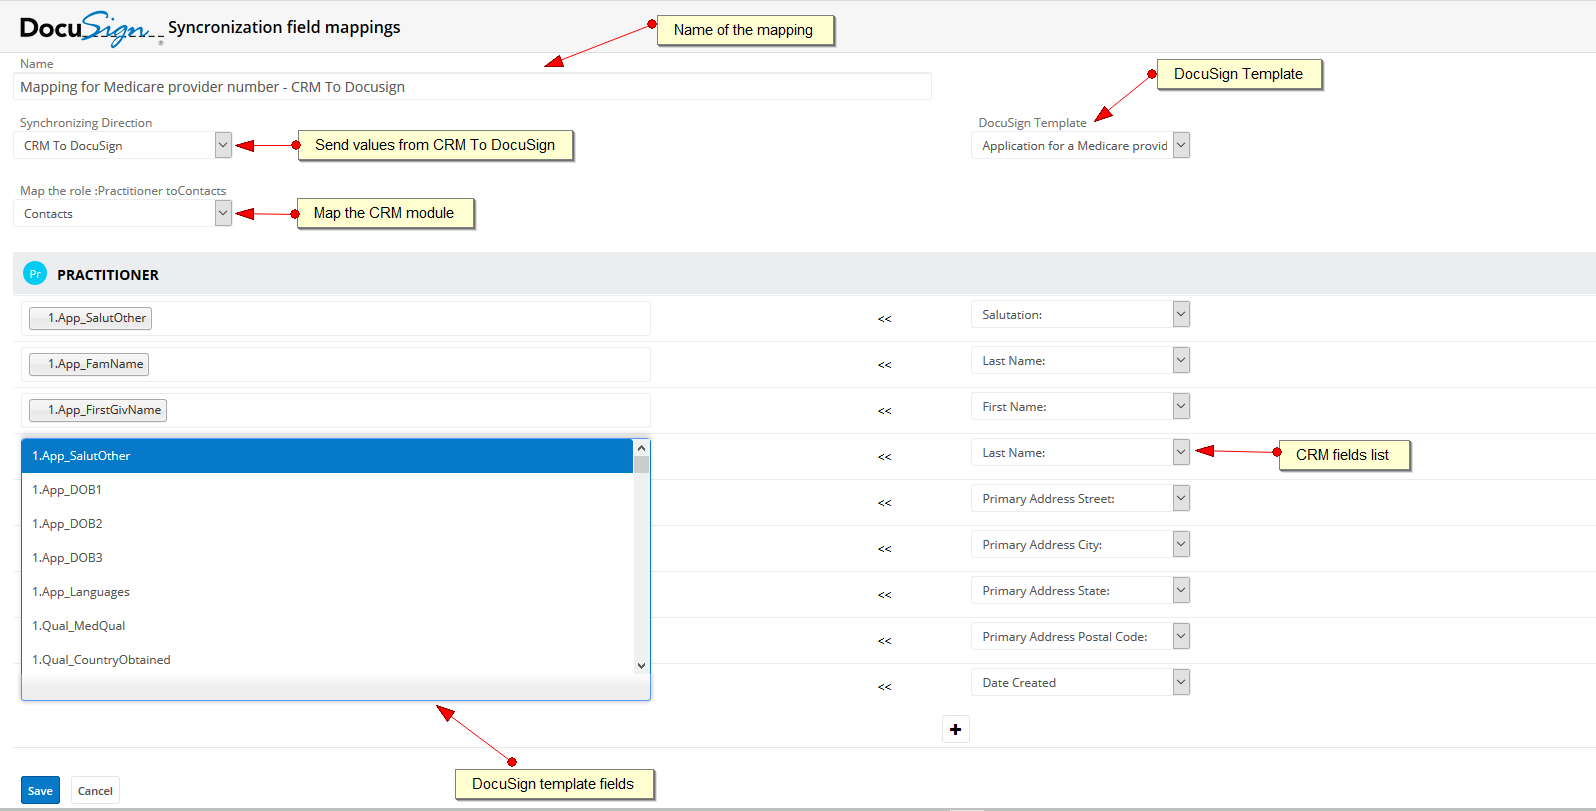 SugarCRM for DocuSign